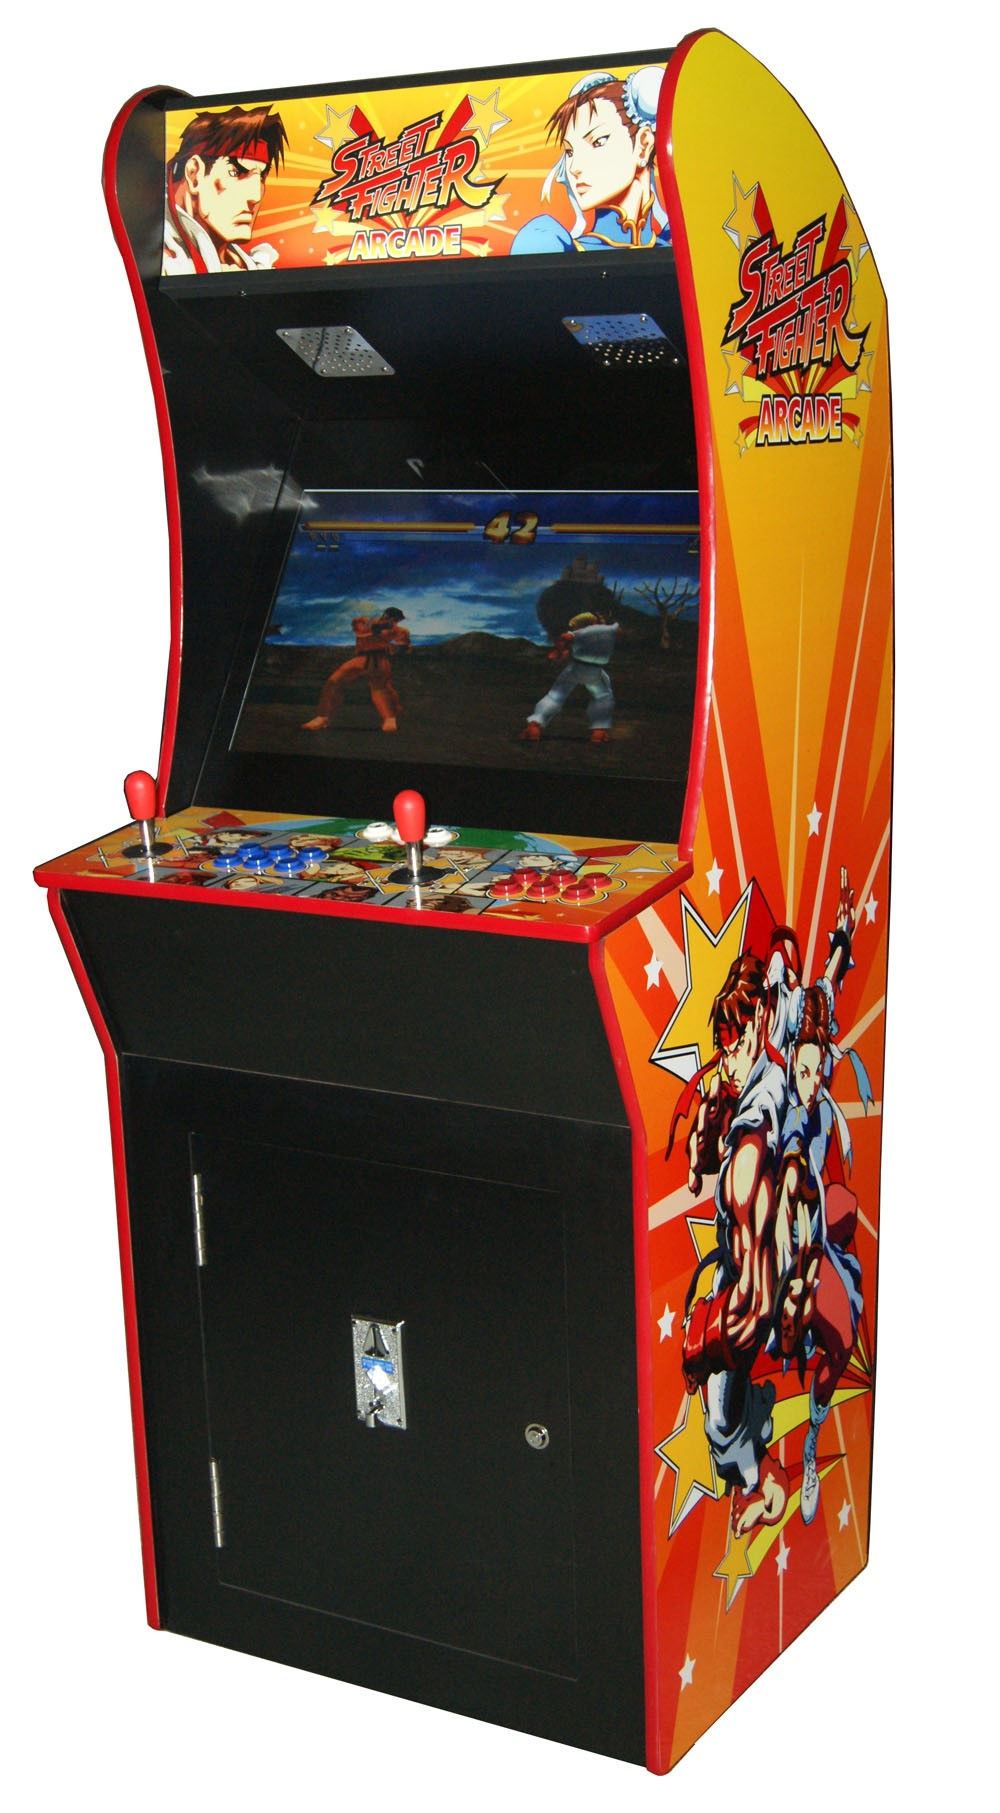 Arcade Rewind 3500 in 1 Upright Arcade Machine Street Fighter for sale Sydney